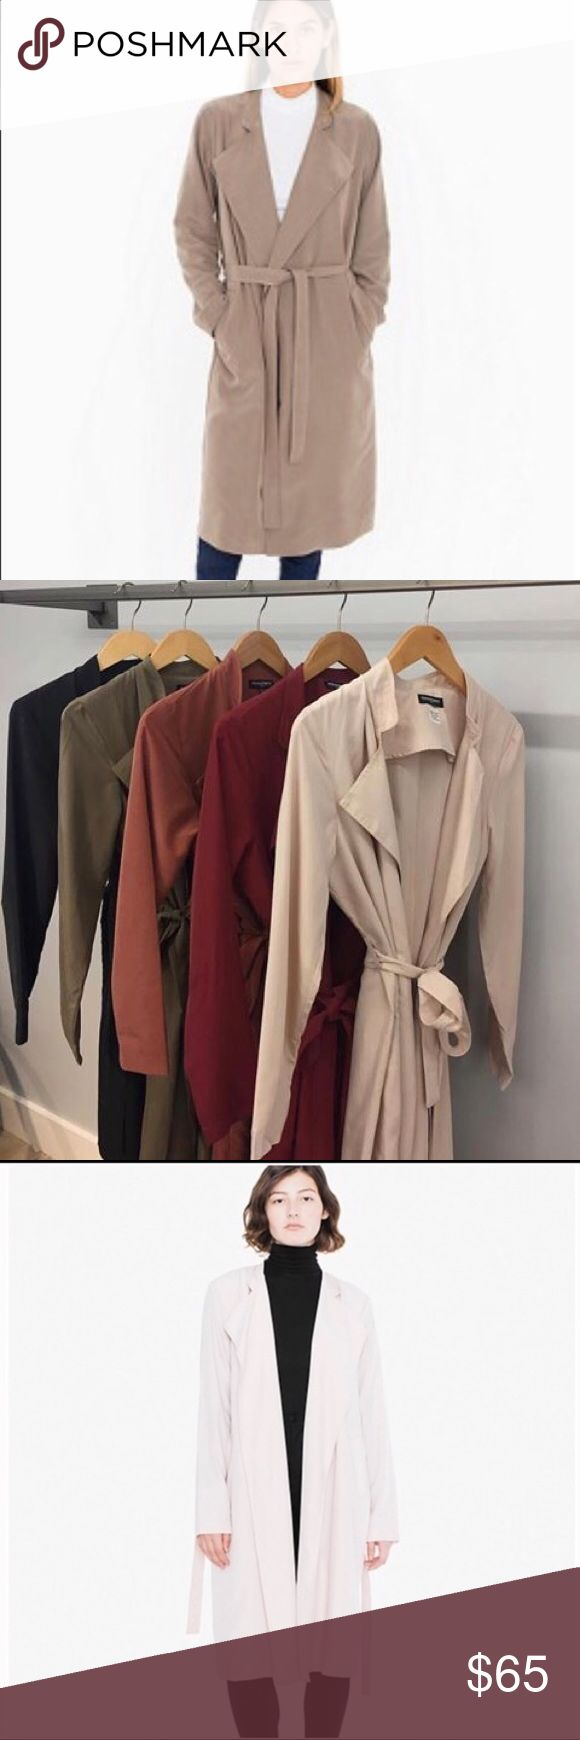 American Apparel lightweight Dylan trench tan nude Size m/l brand new never worn American Apparel Jackets & Coats Trench Coats